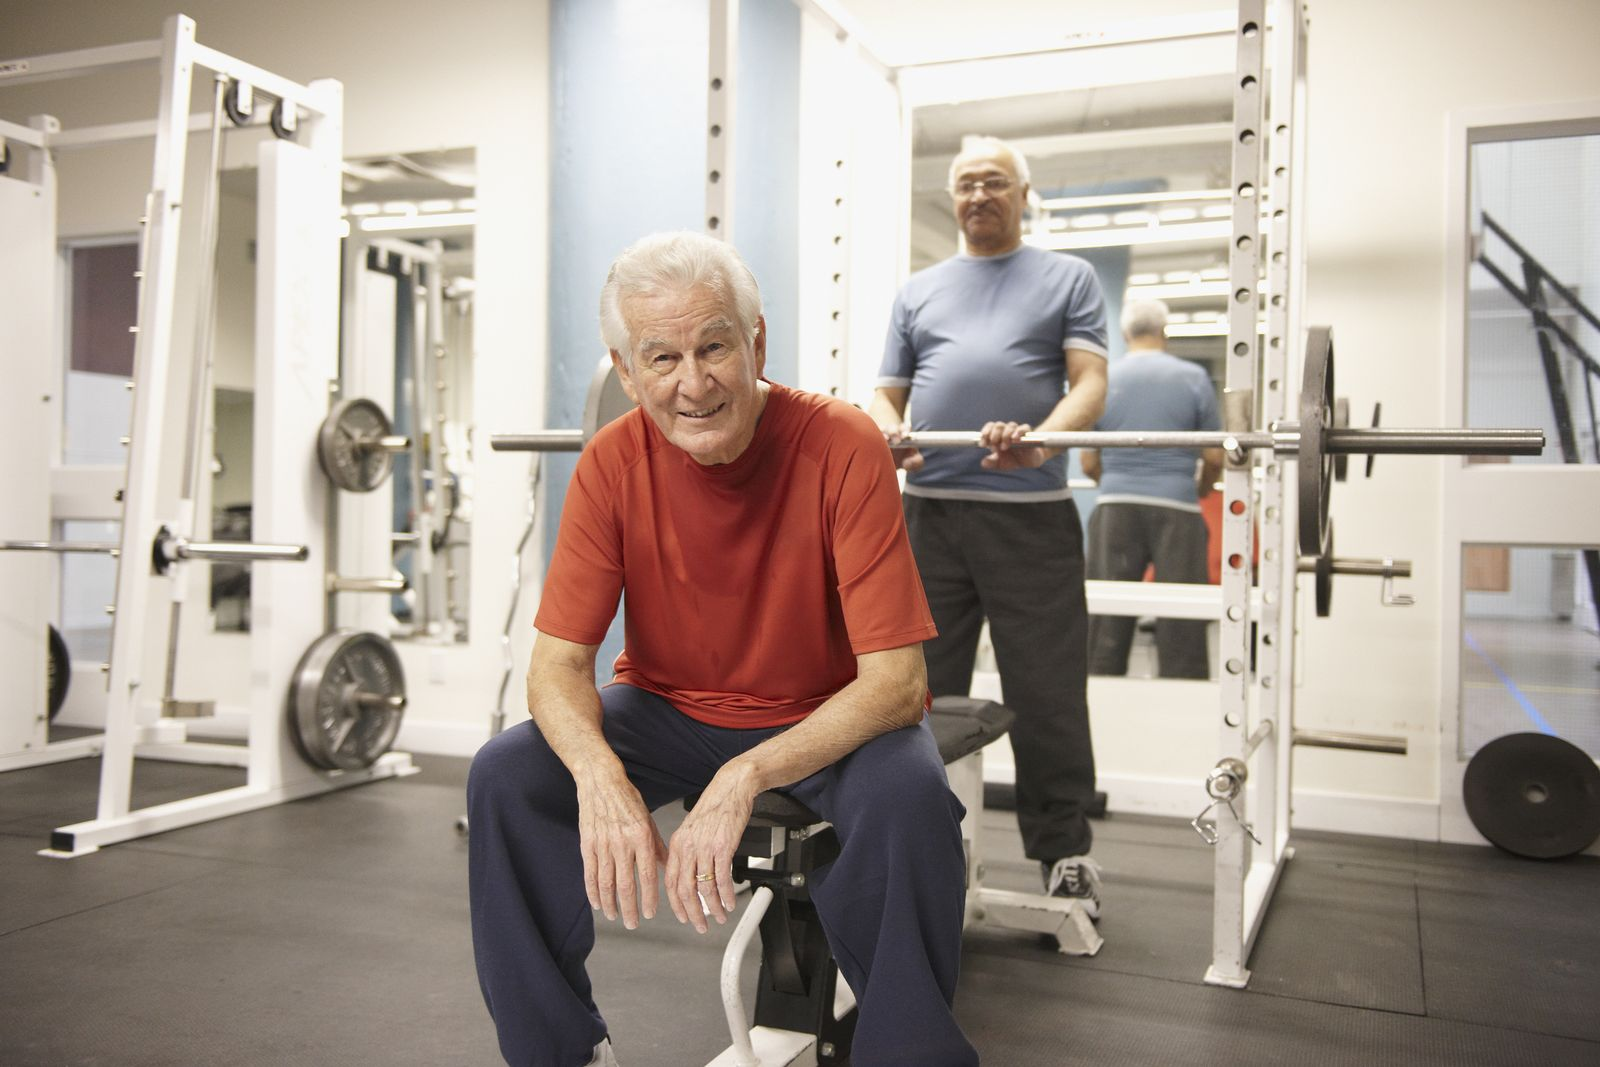 Senior men working out in health club